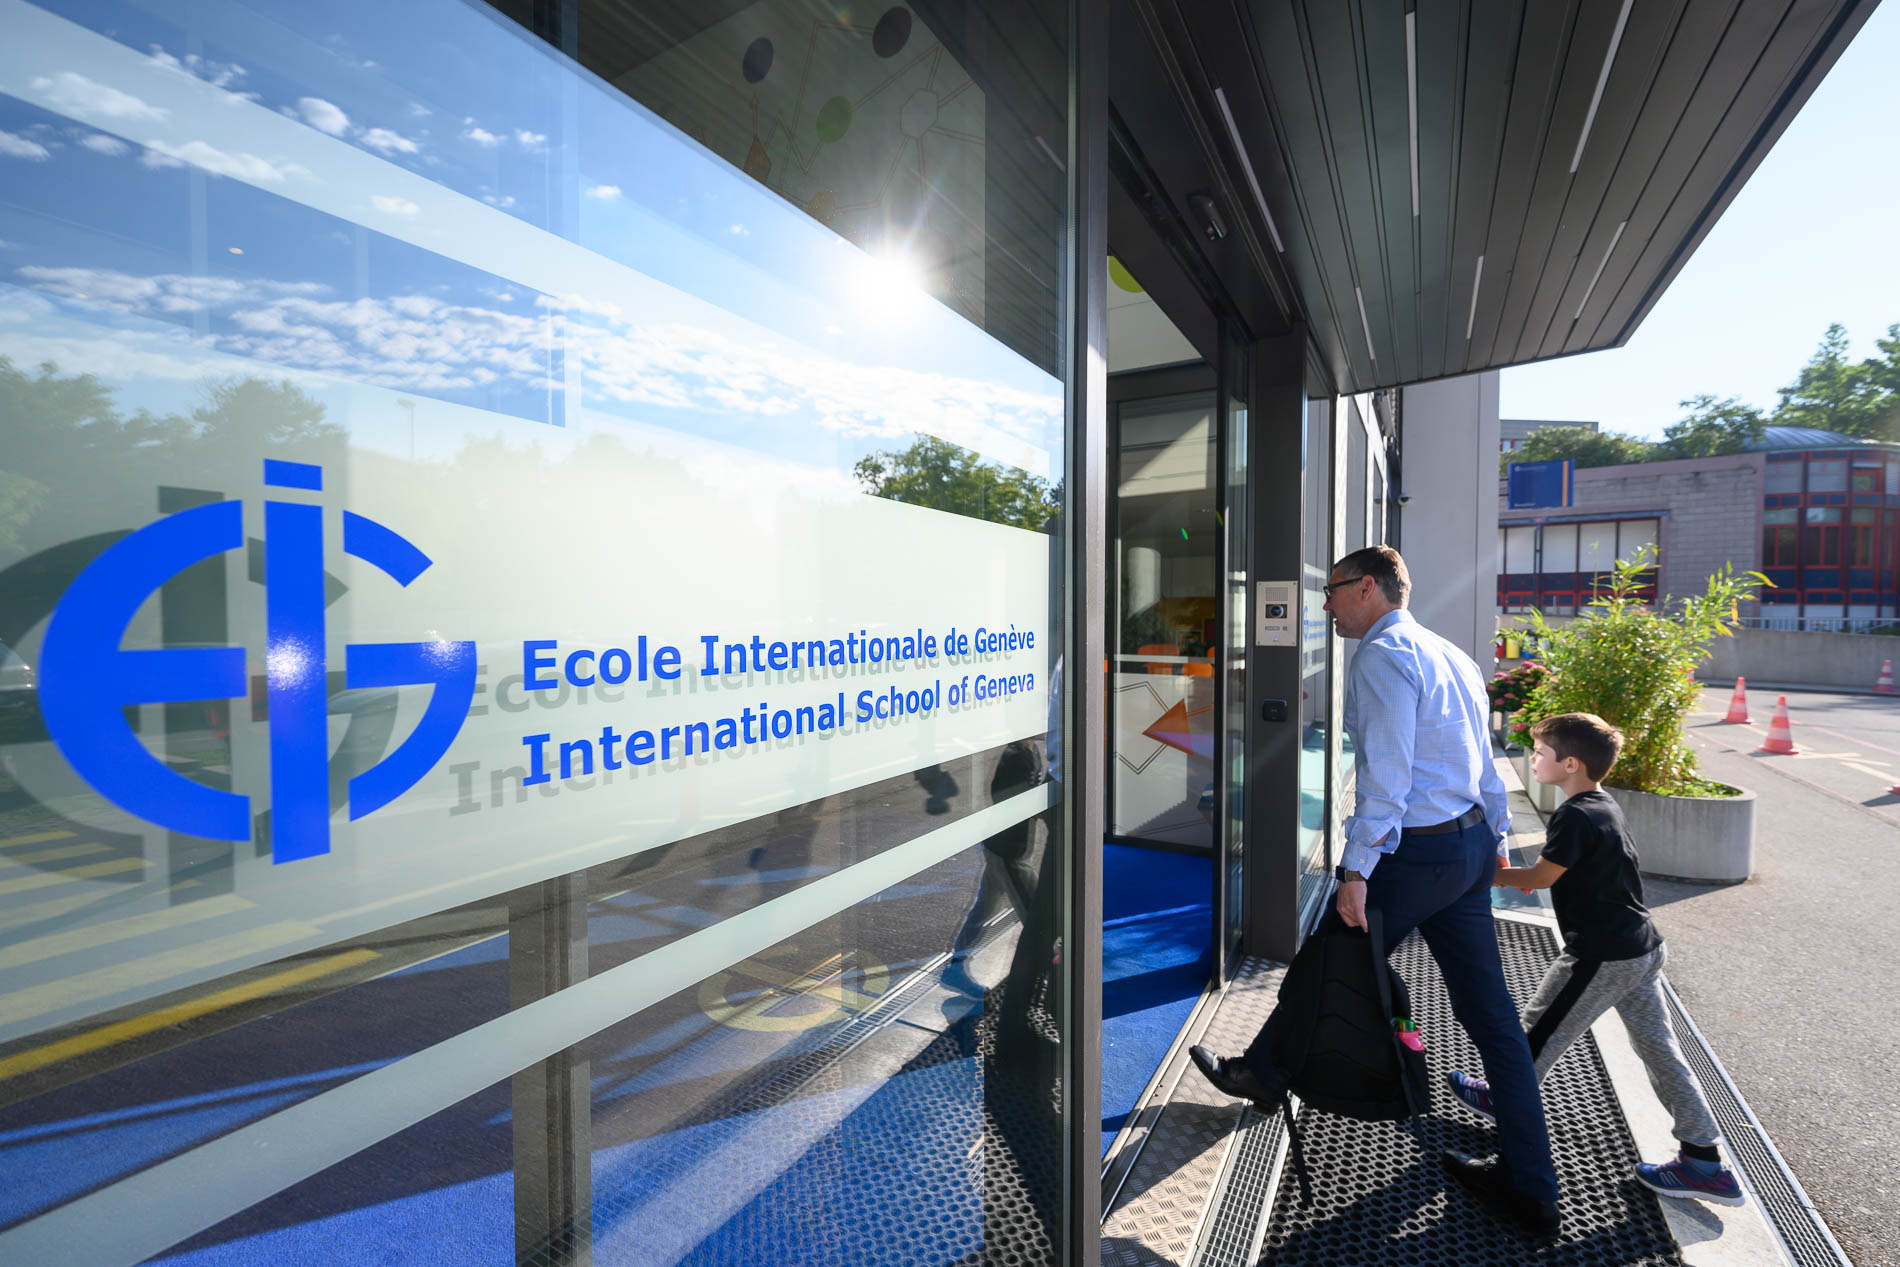 Ecolint - International School of Geneva